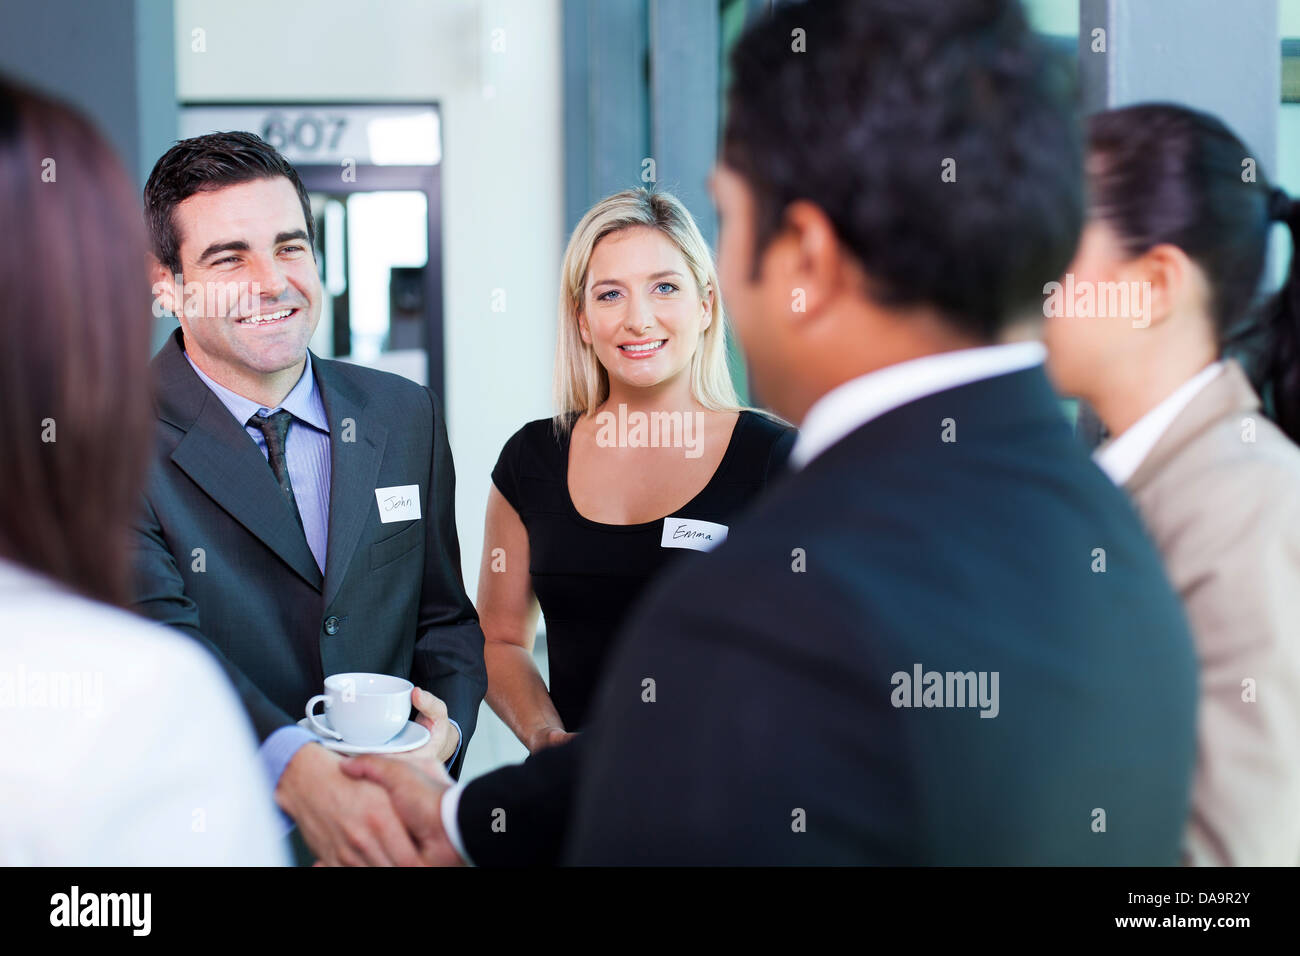 group of business people at business conference - Stock Image